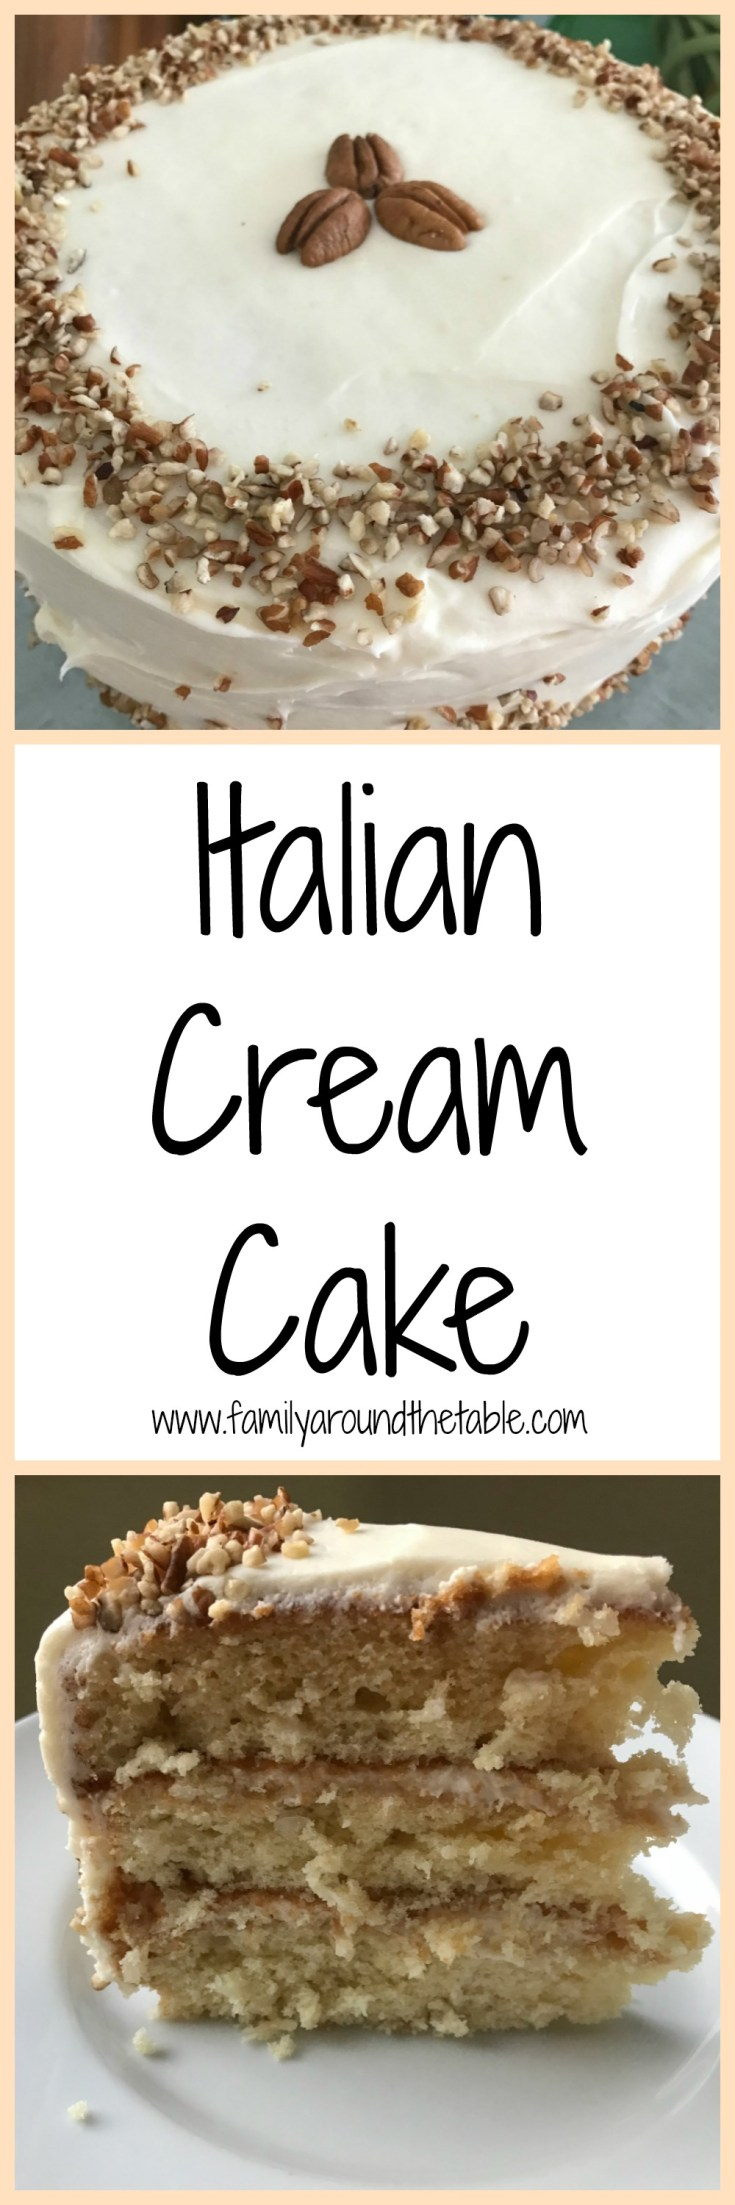 Italian Cream Cake, also known as Italian Wedding Cake, is perfect for any special occasion.